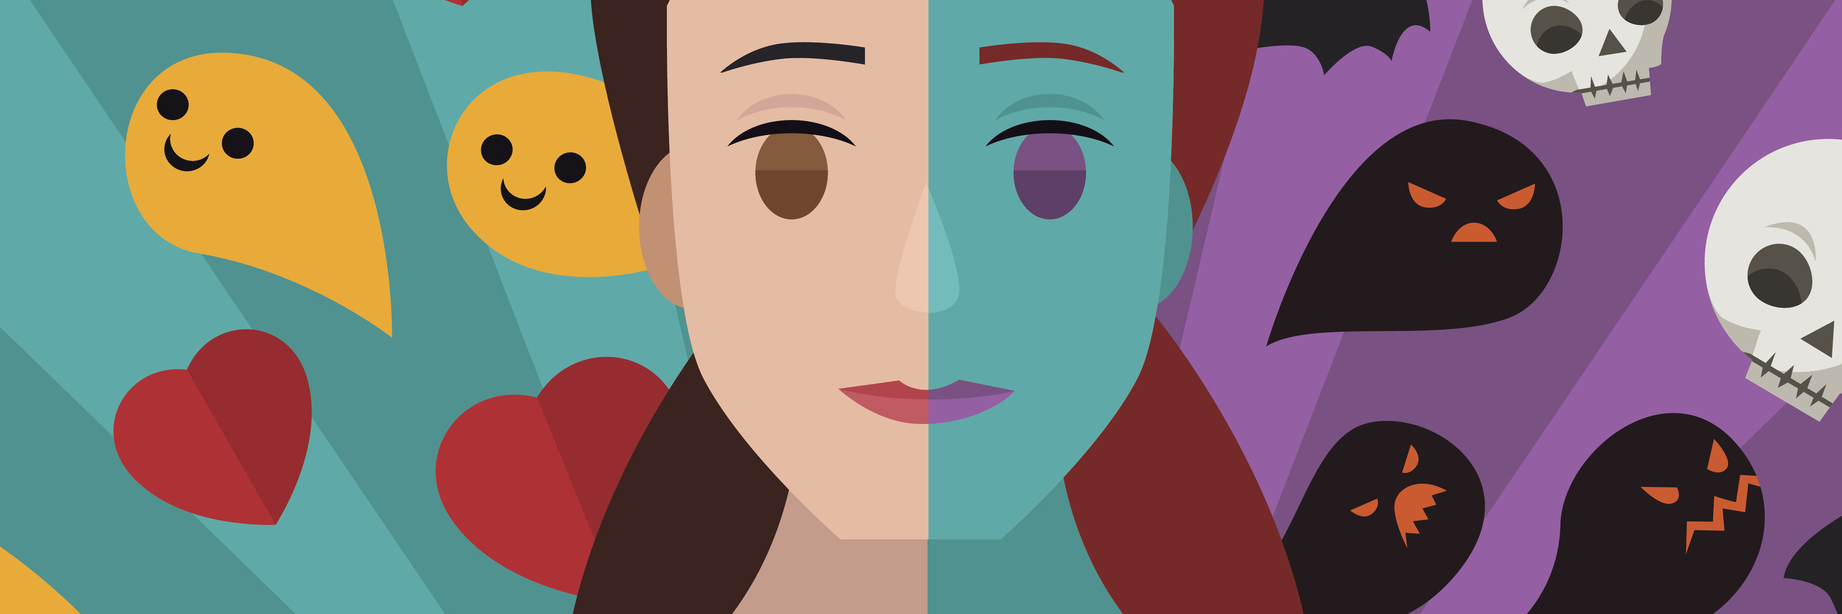 illustration of woman with two different sides one happy one sad bipolar disorder